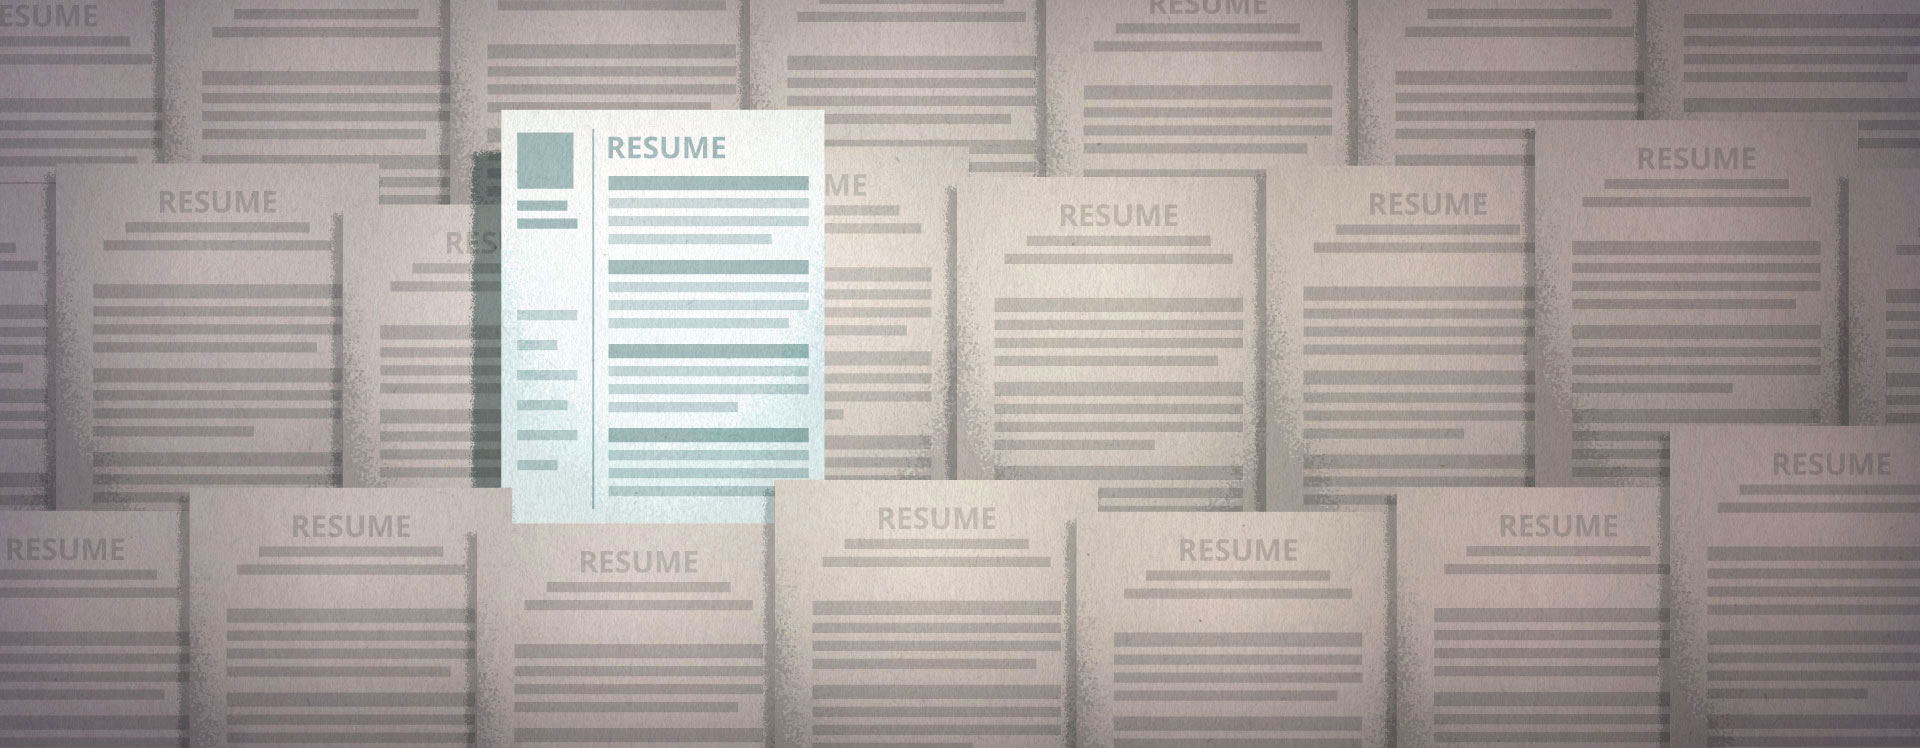 Data Science Resume  How To Make Your Resume Stand Out